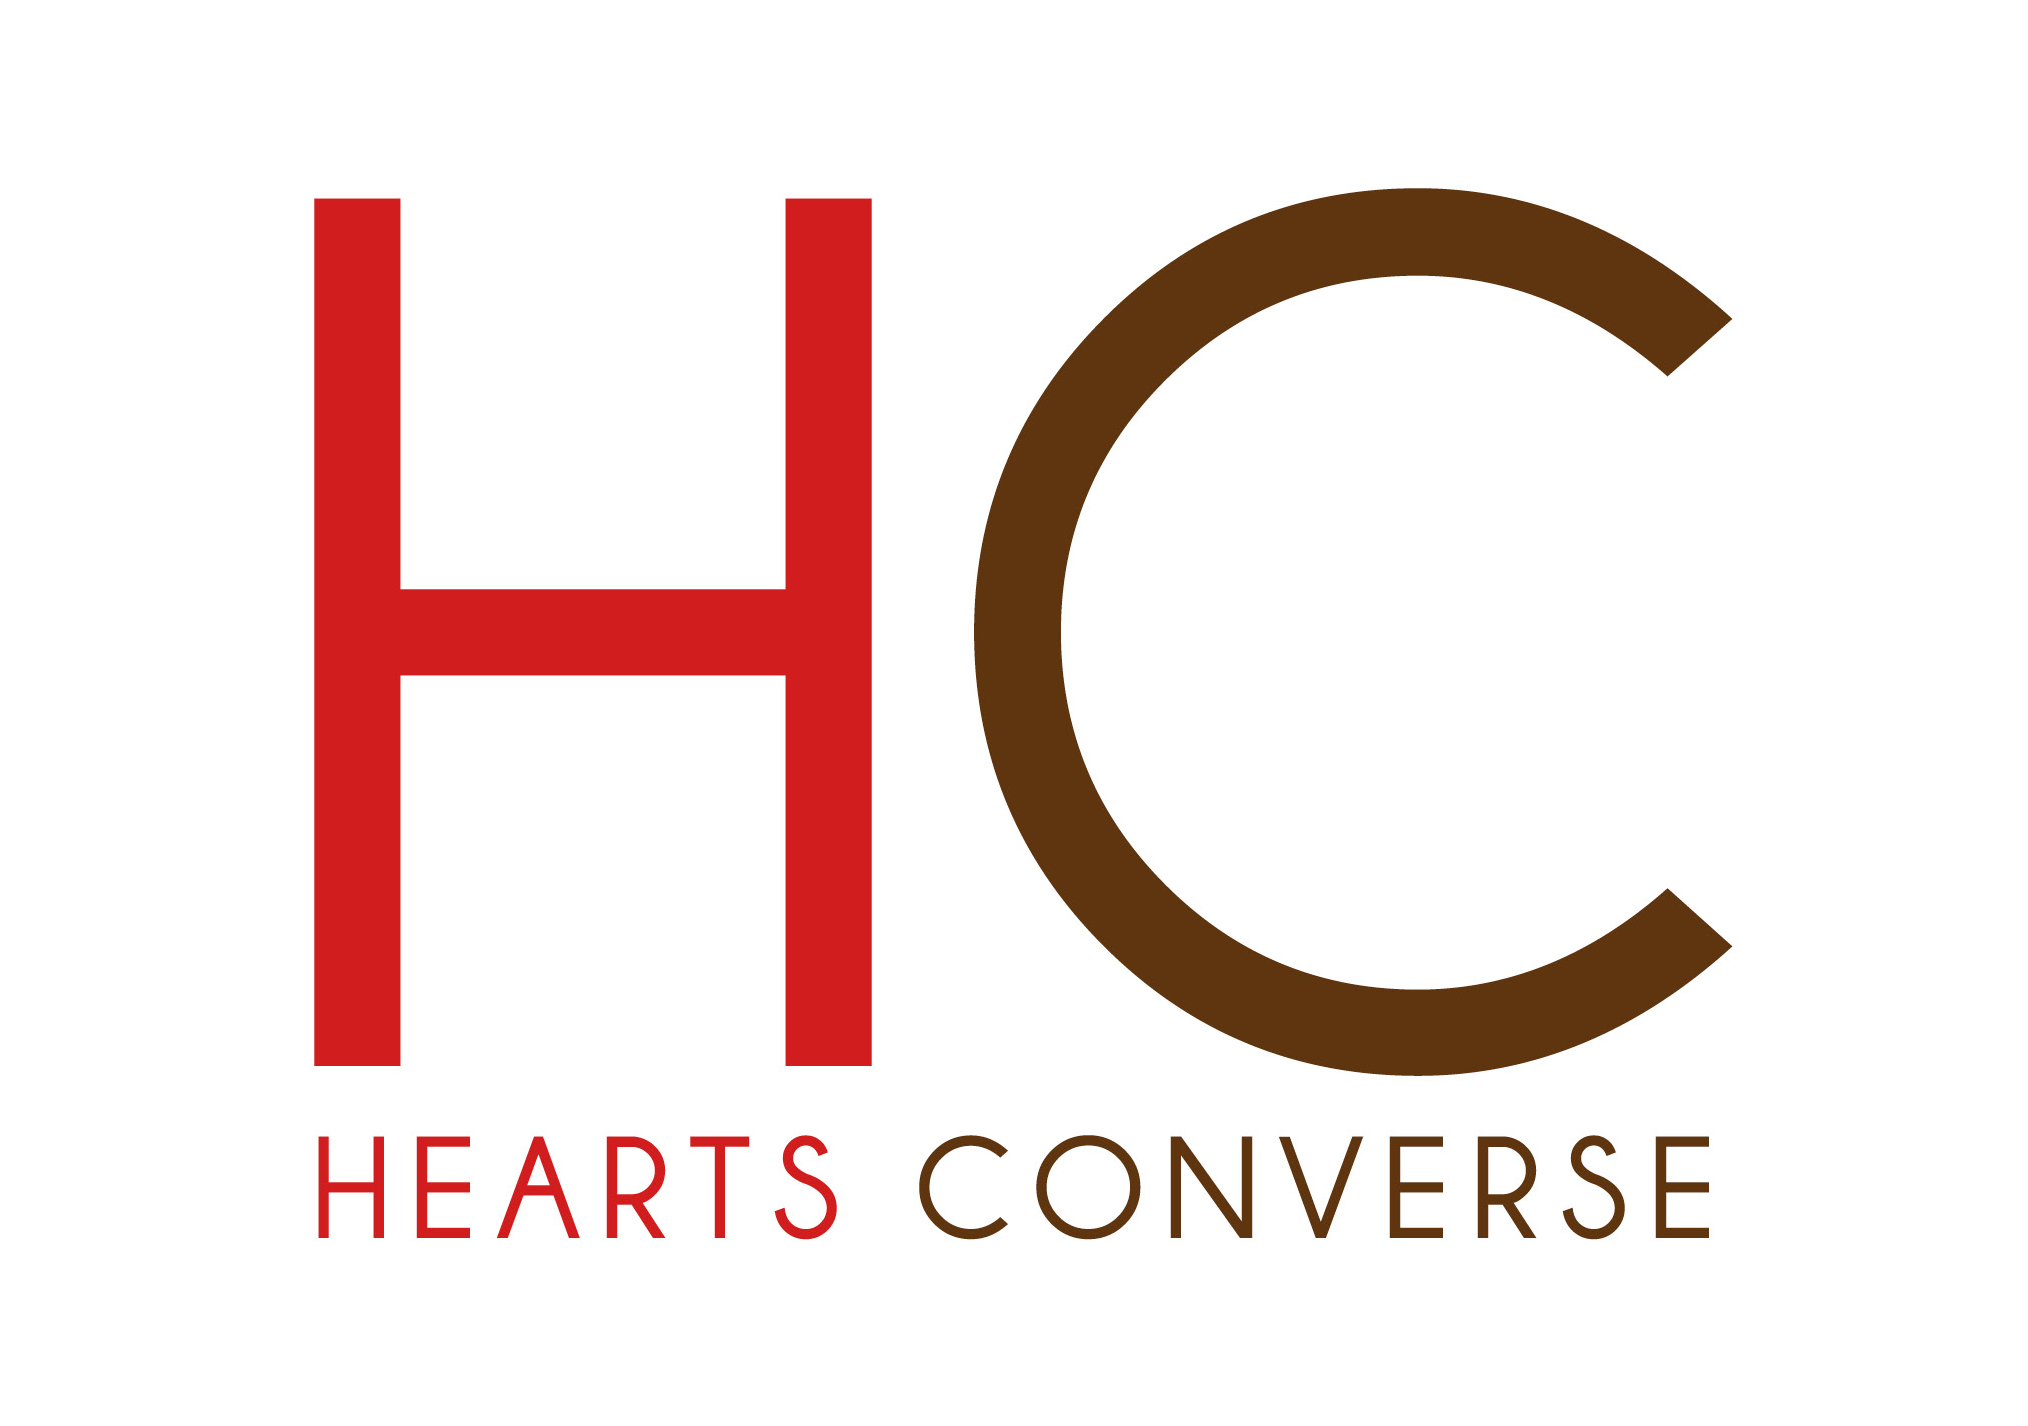 Hearts Converse Wins 2nd Place In Howard University School Of